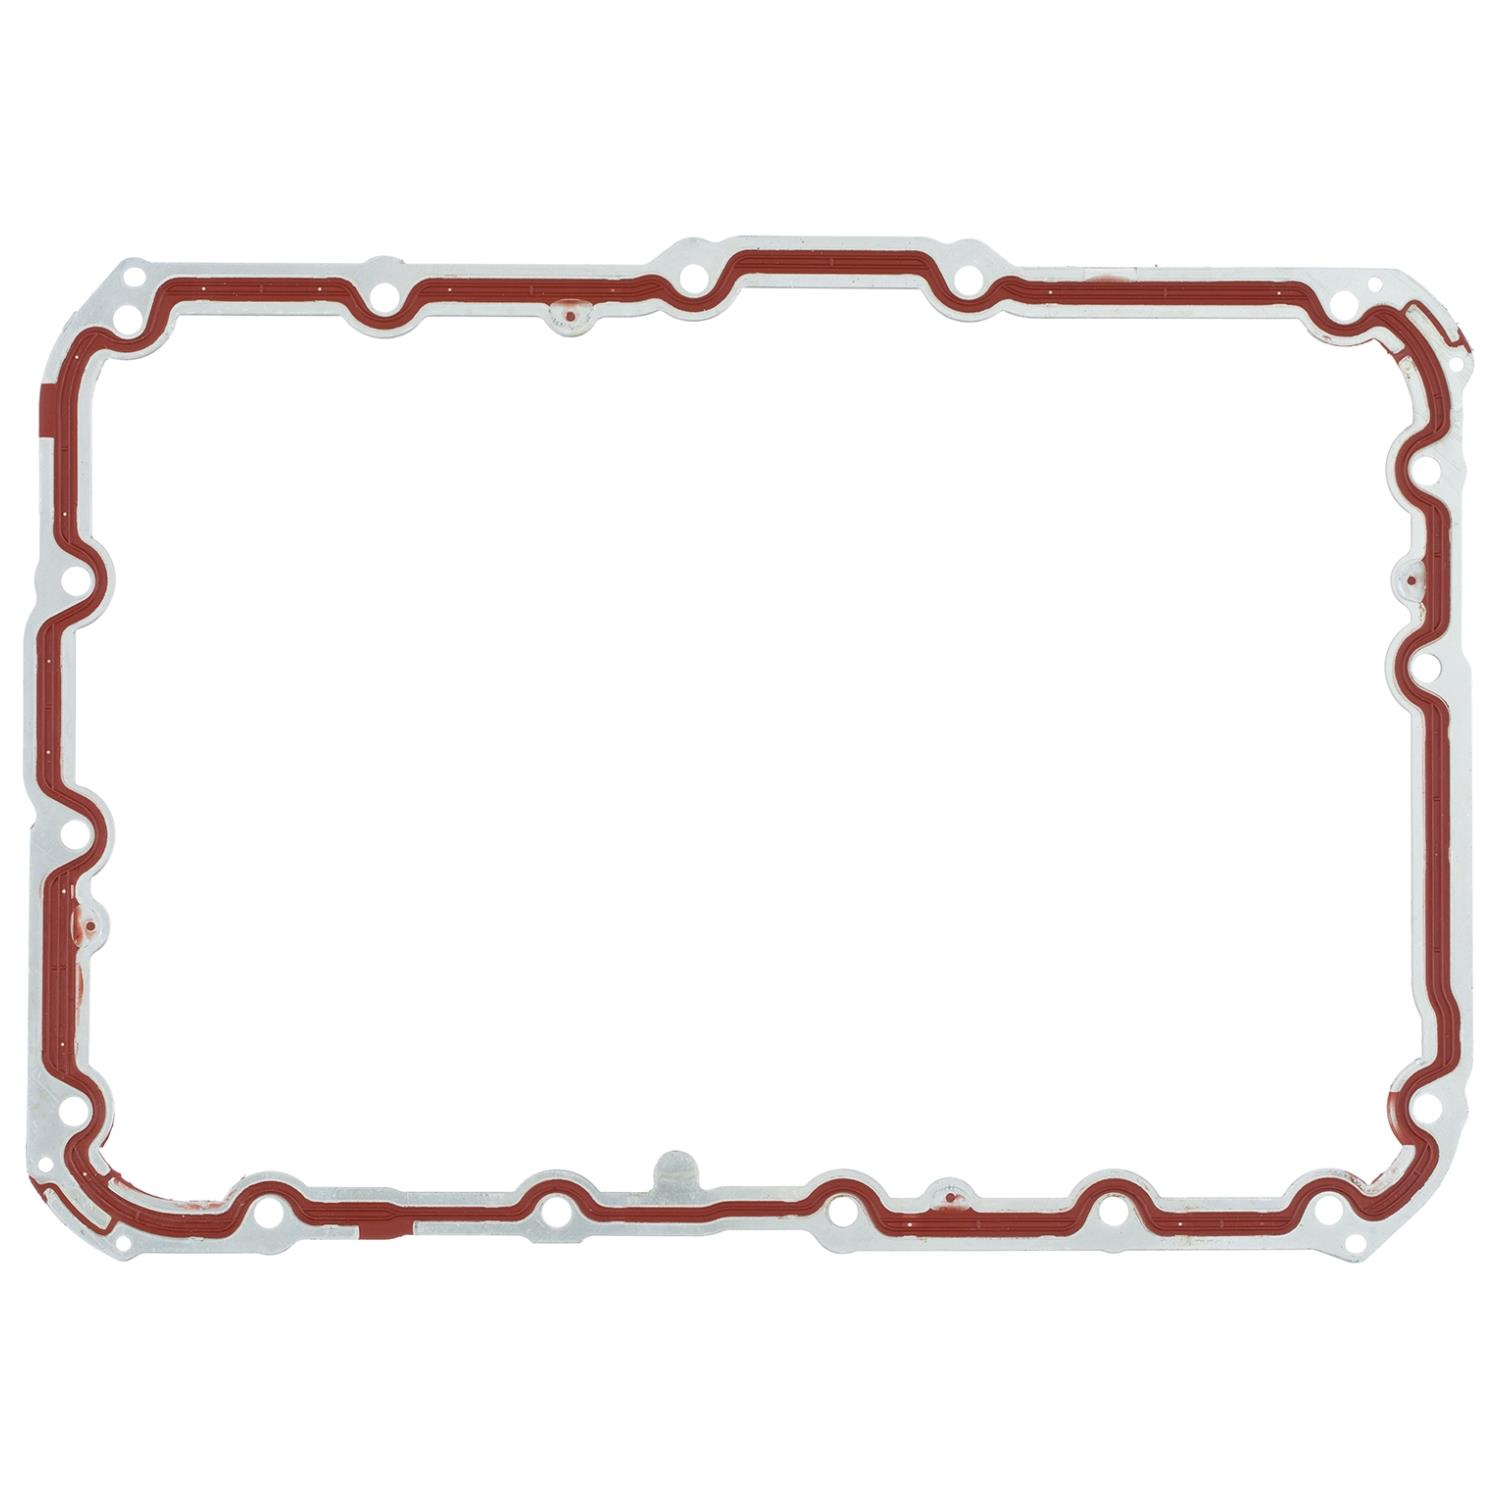 Automatic  ap ATP Transmission Oil Pan Gasket for 1989-2000 Plymouth Voyager